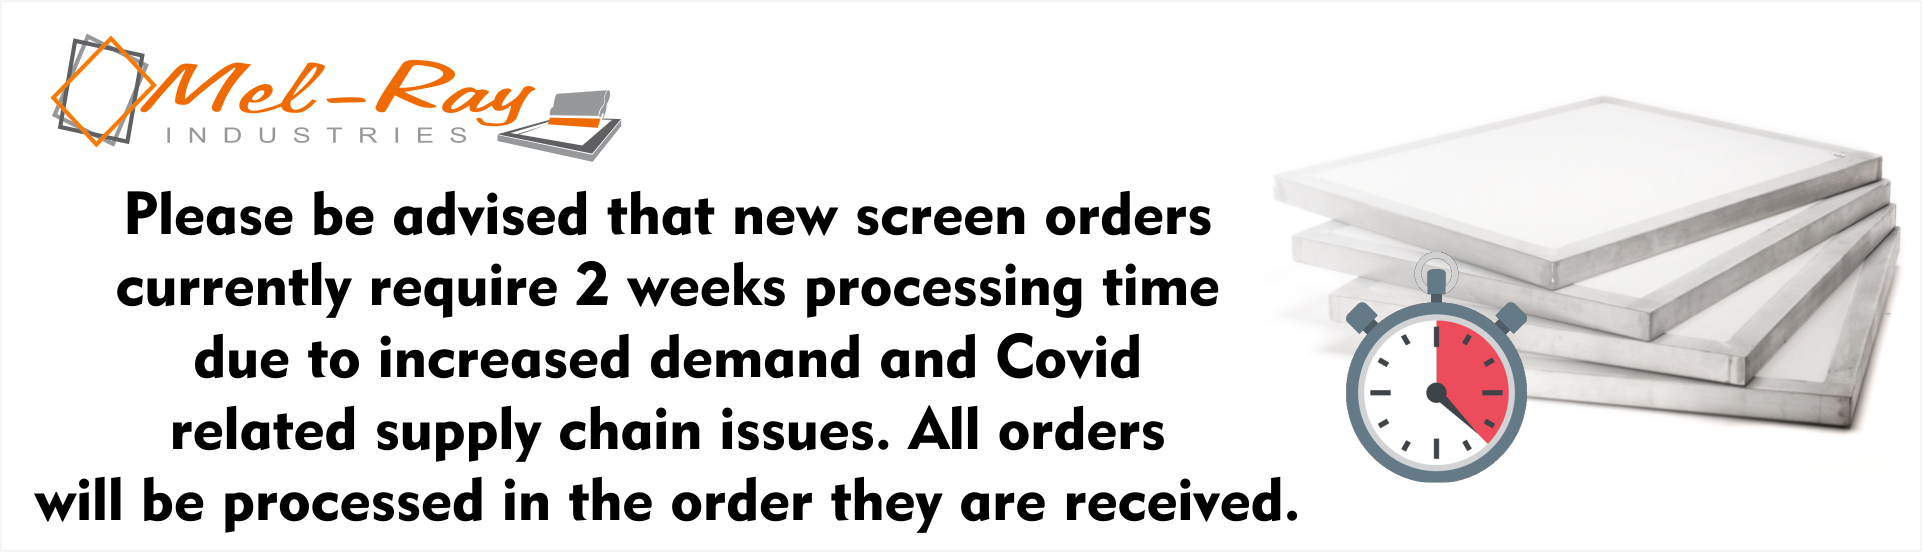 new-screen-order-delay-banner.png